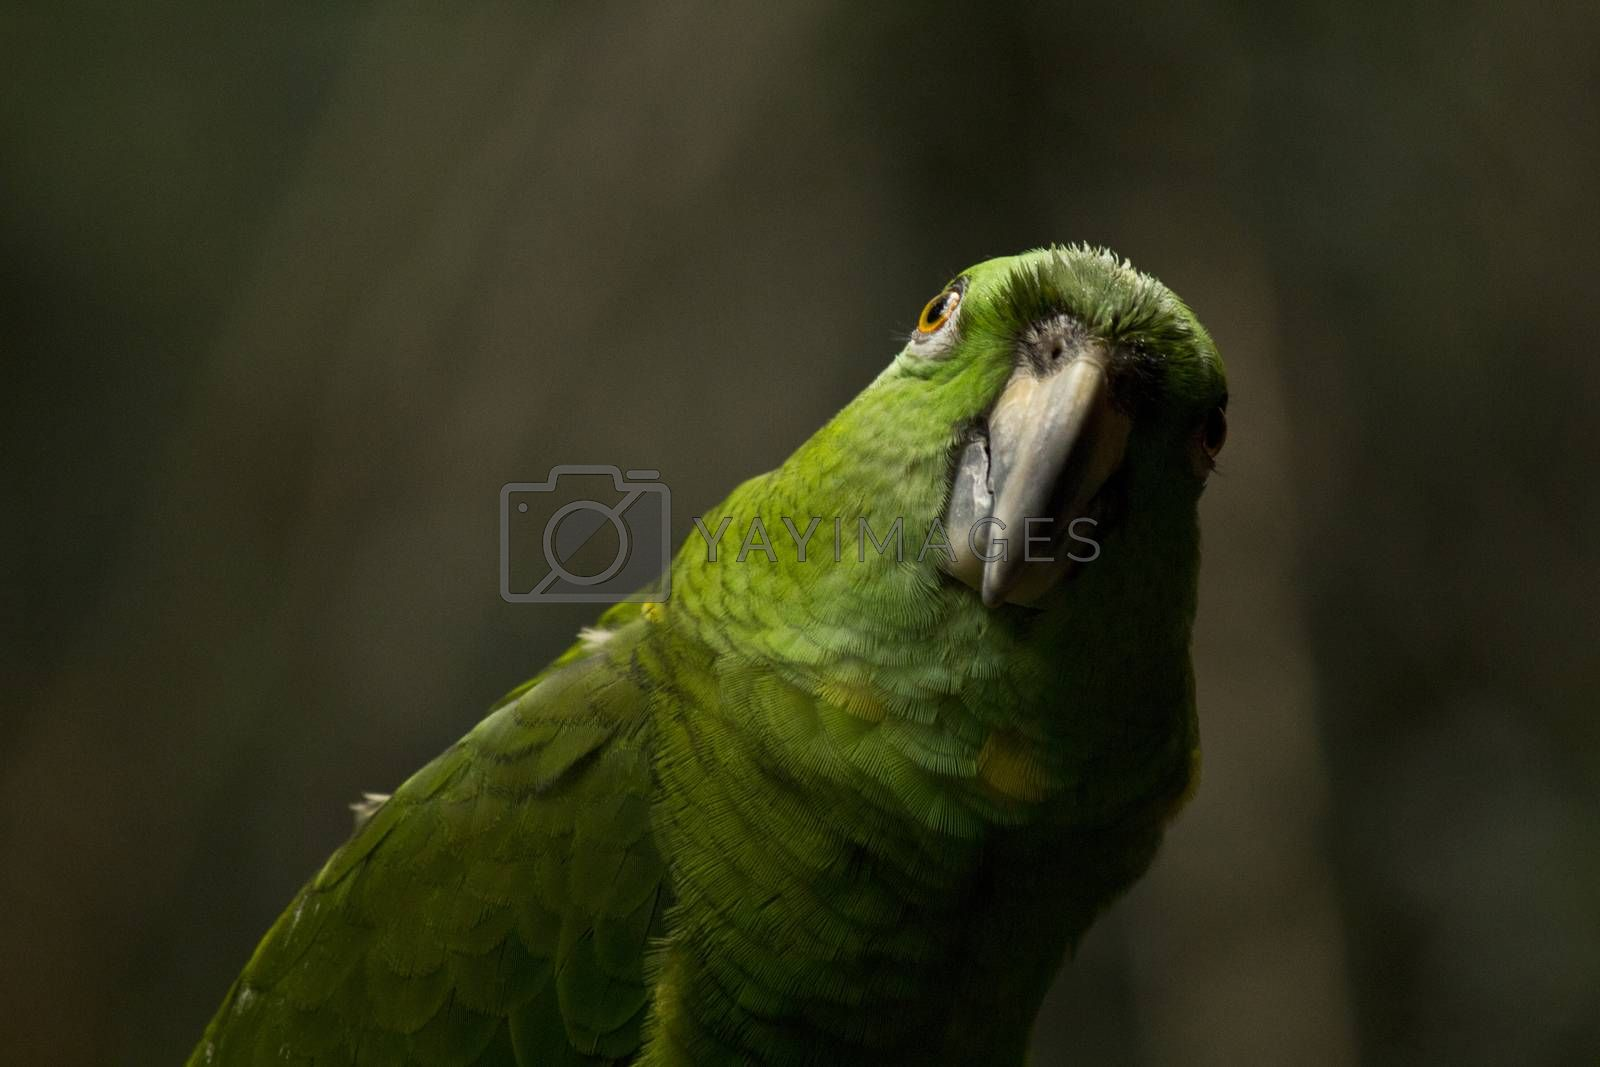 Green parrot looking at camera. Funny animal picture.